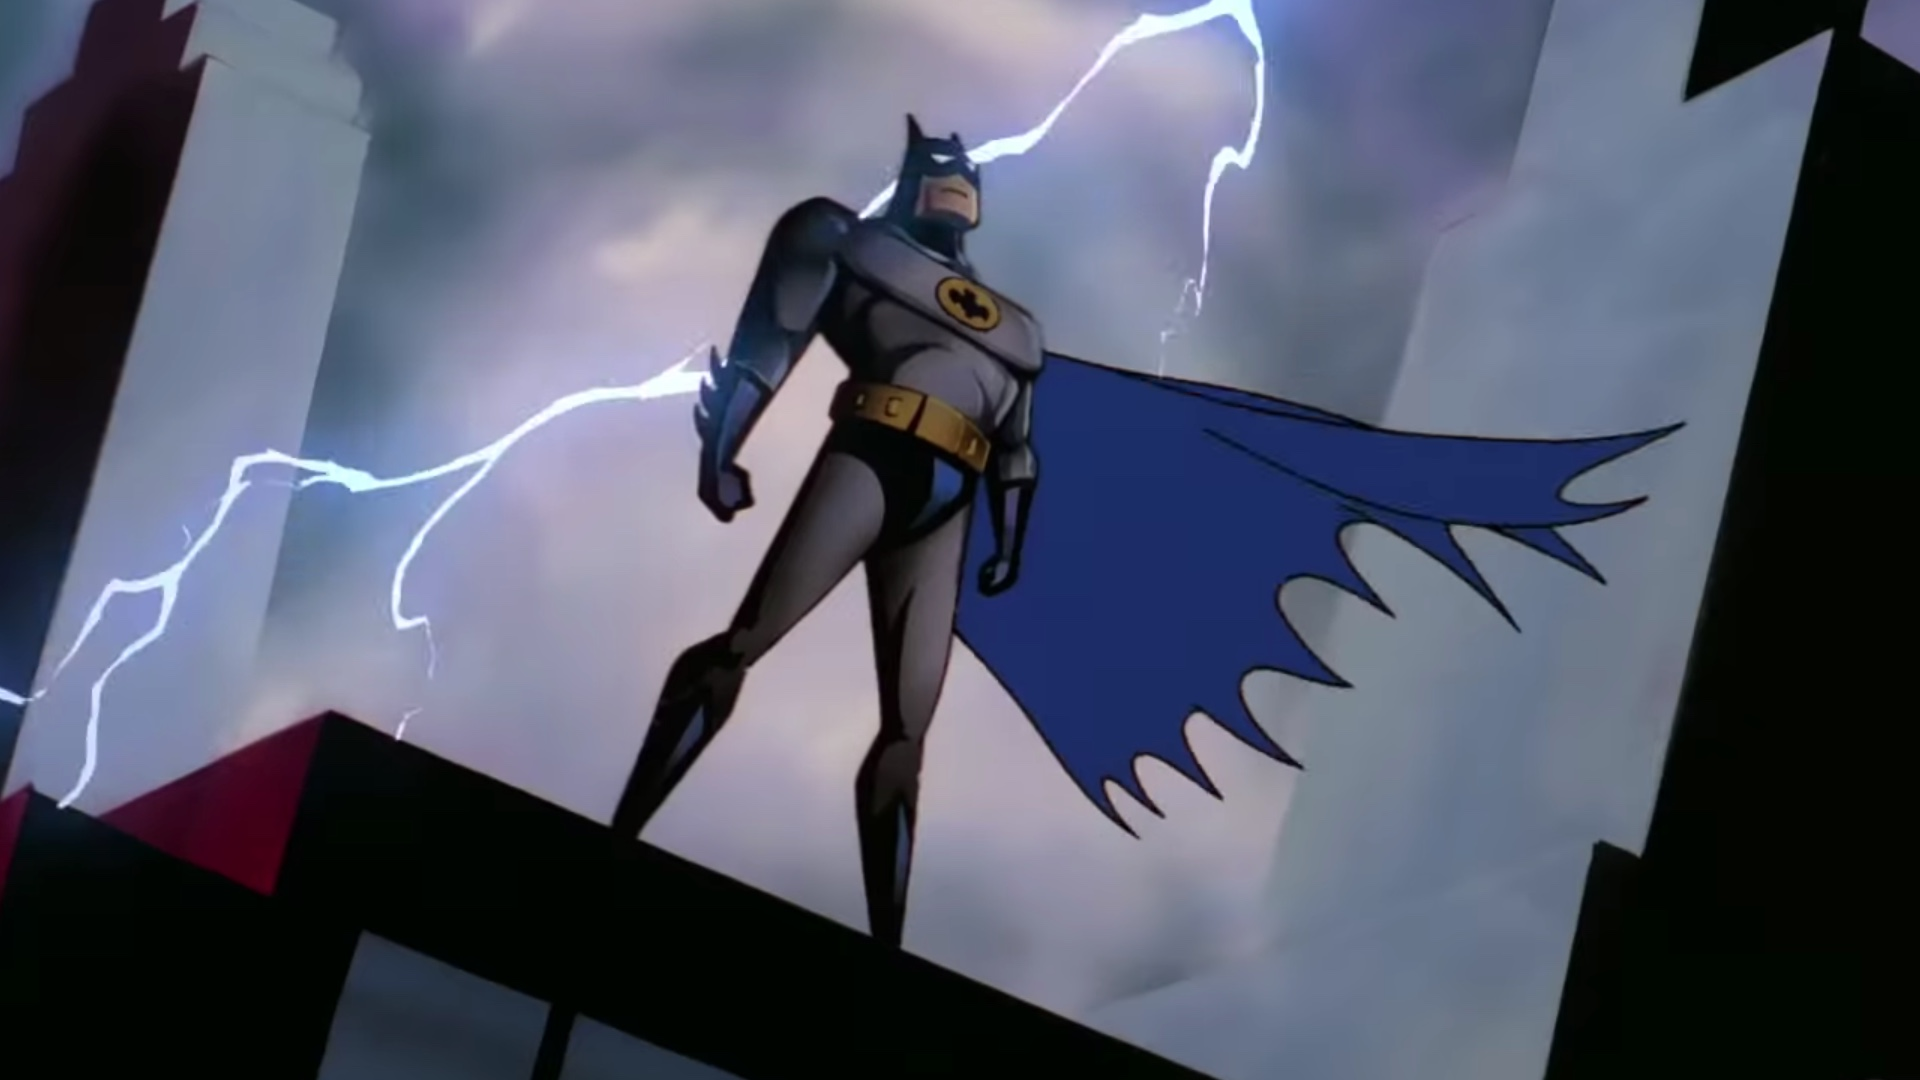 Watch The Remastered Hd Opening To Batman